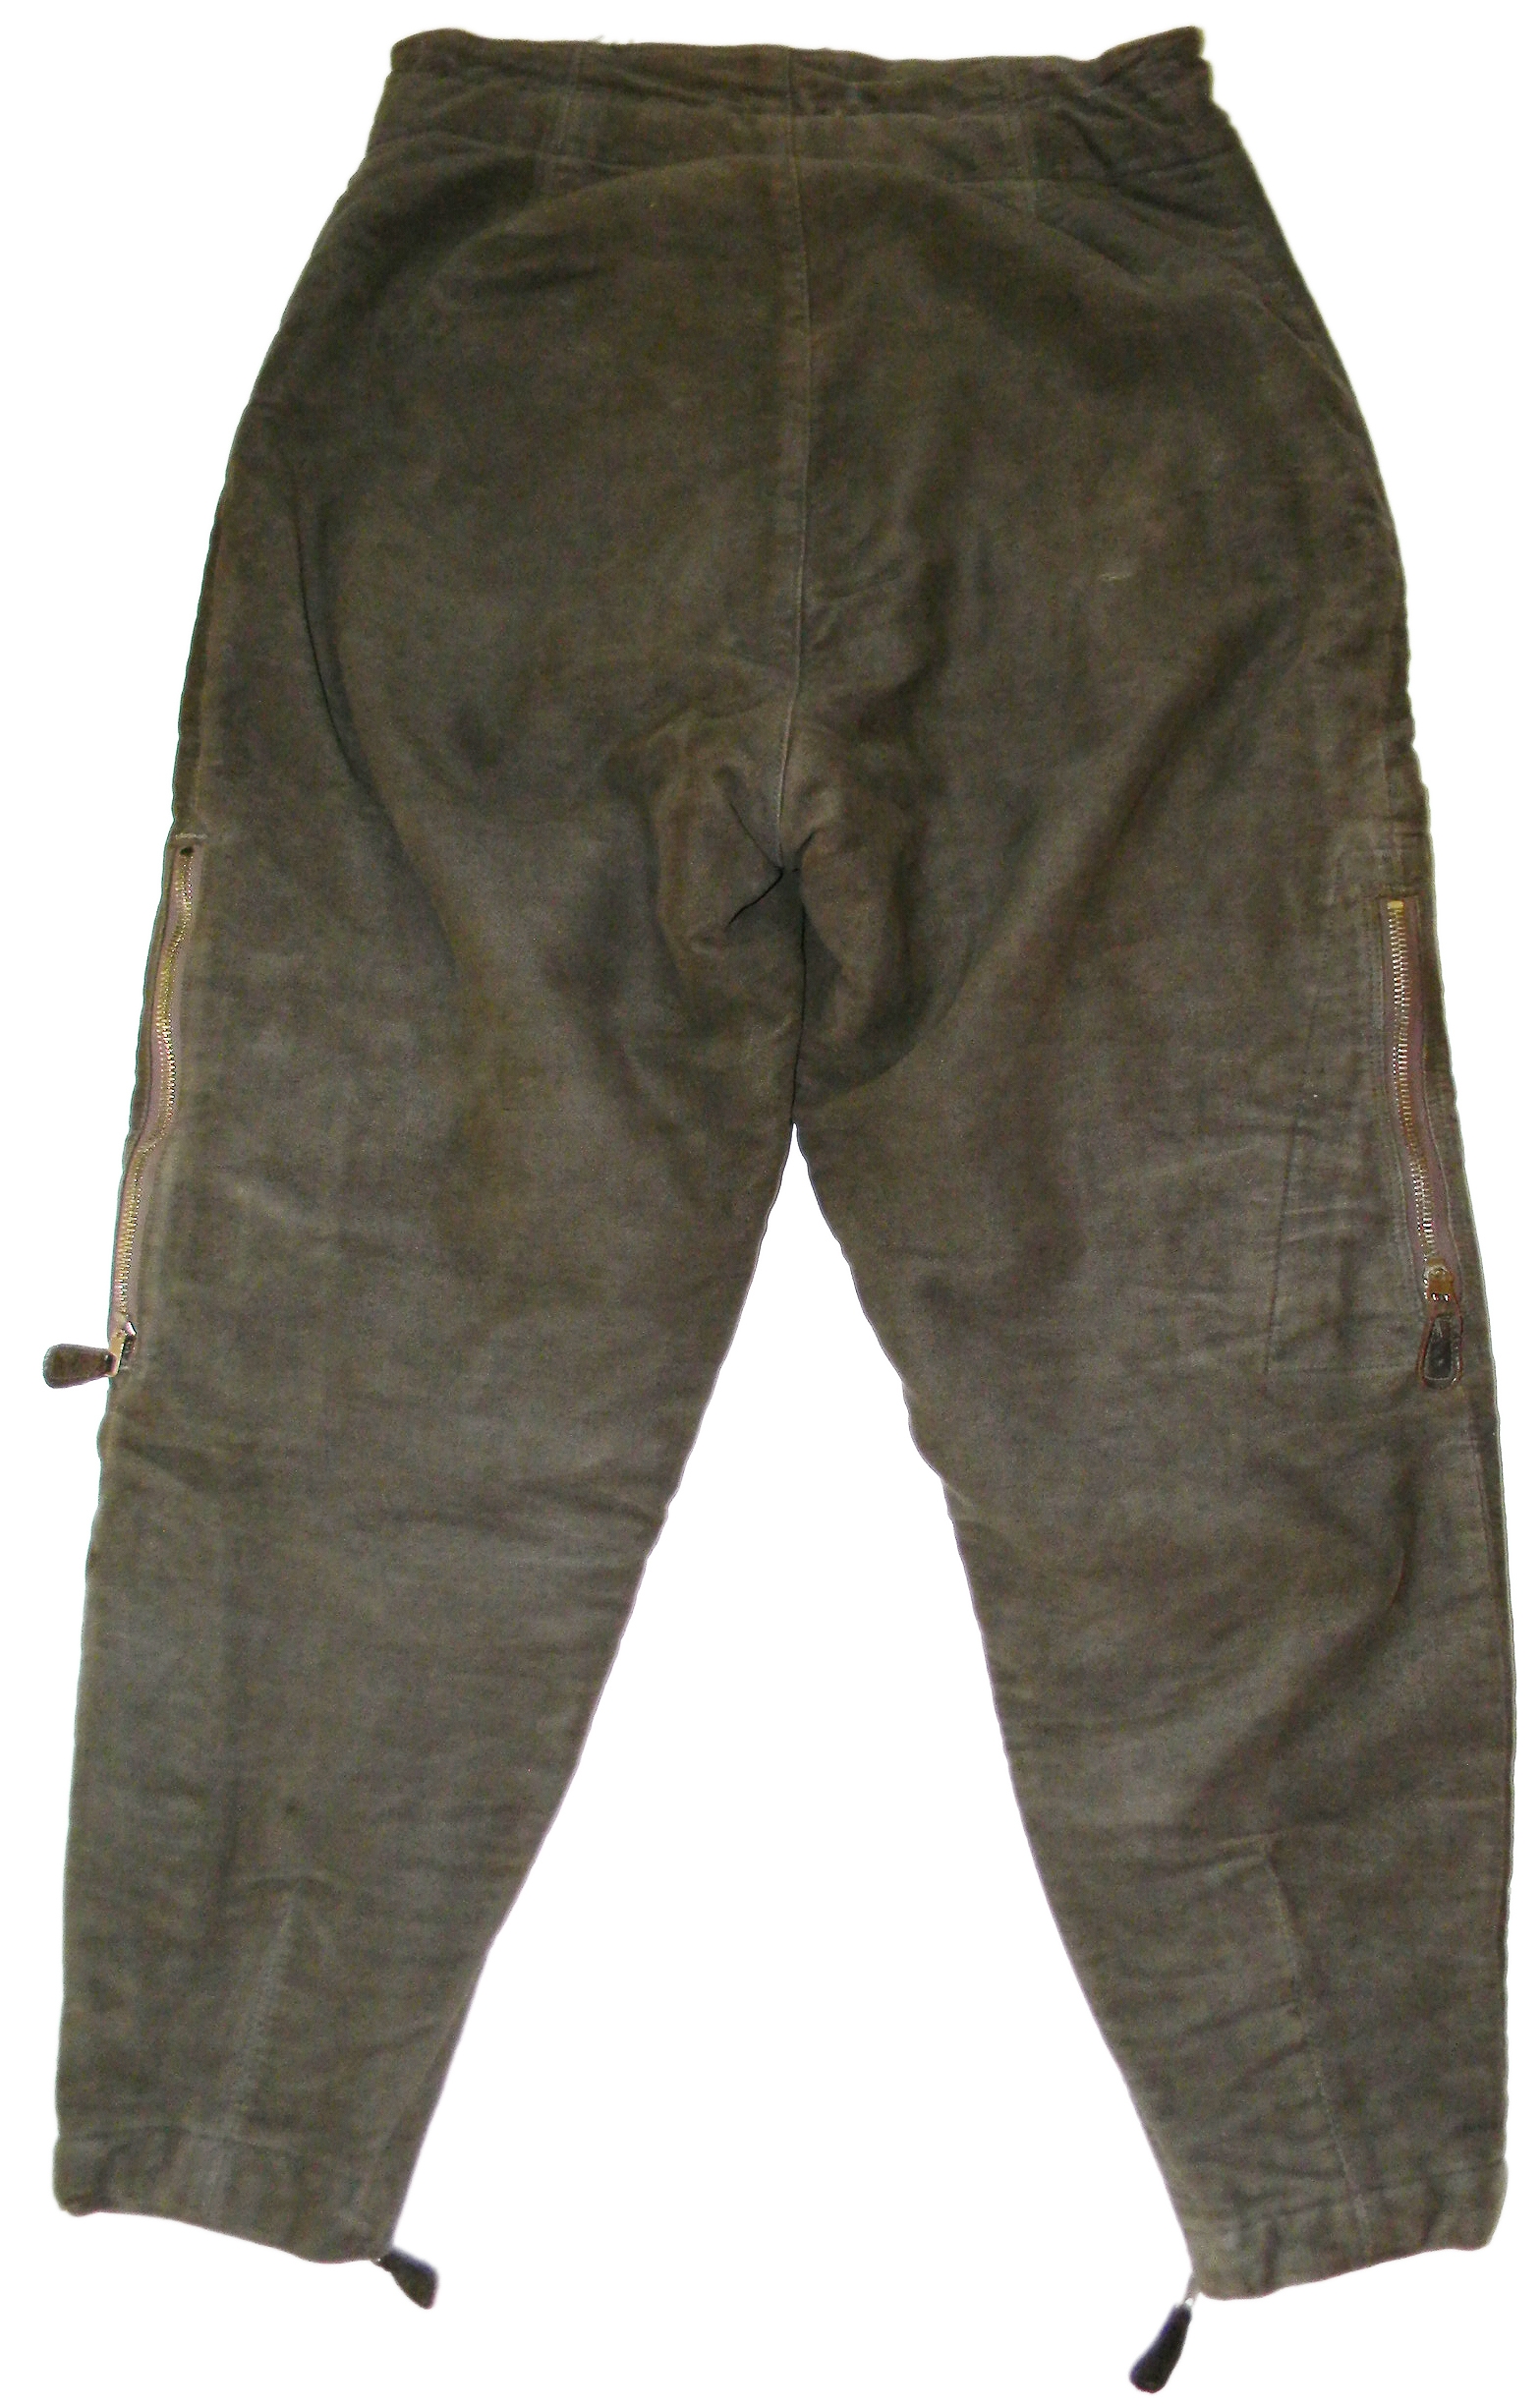 RARE Pre-production LW Channel Pants